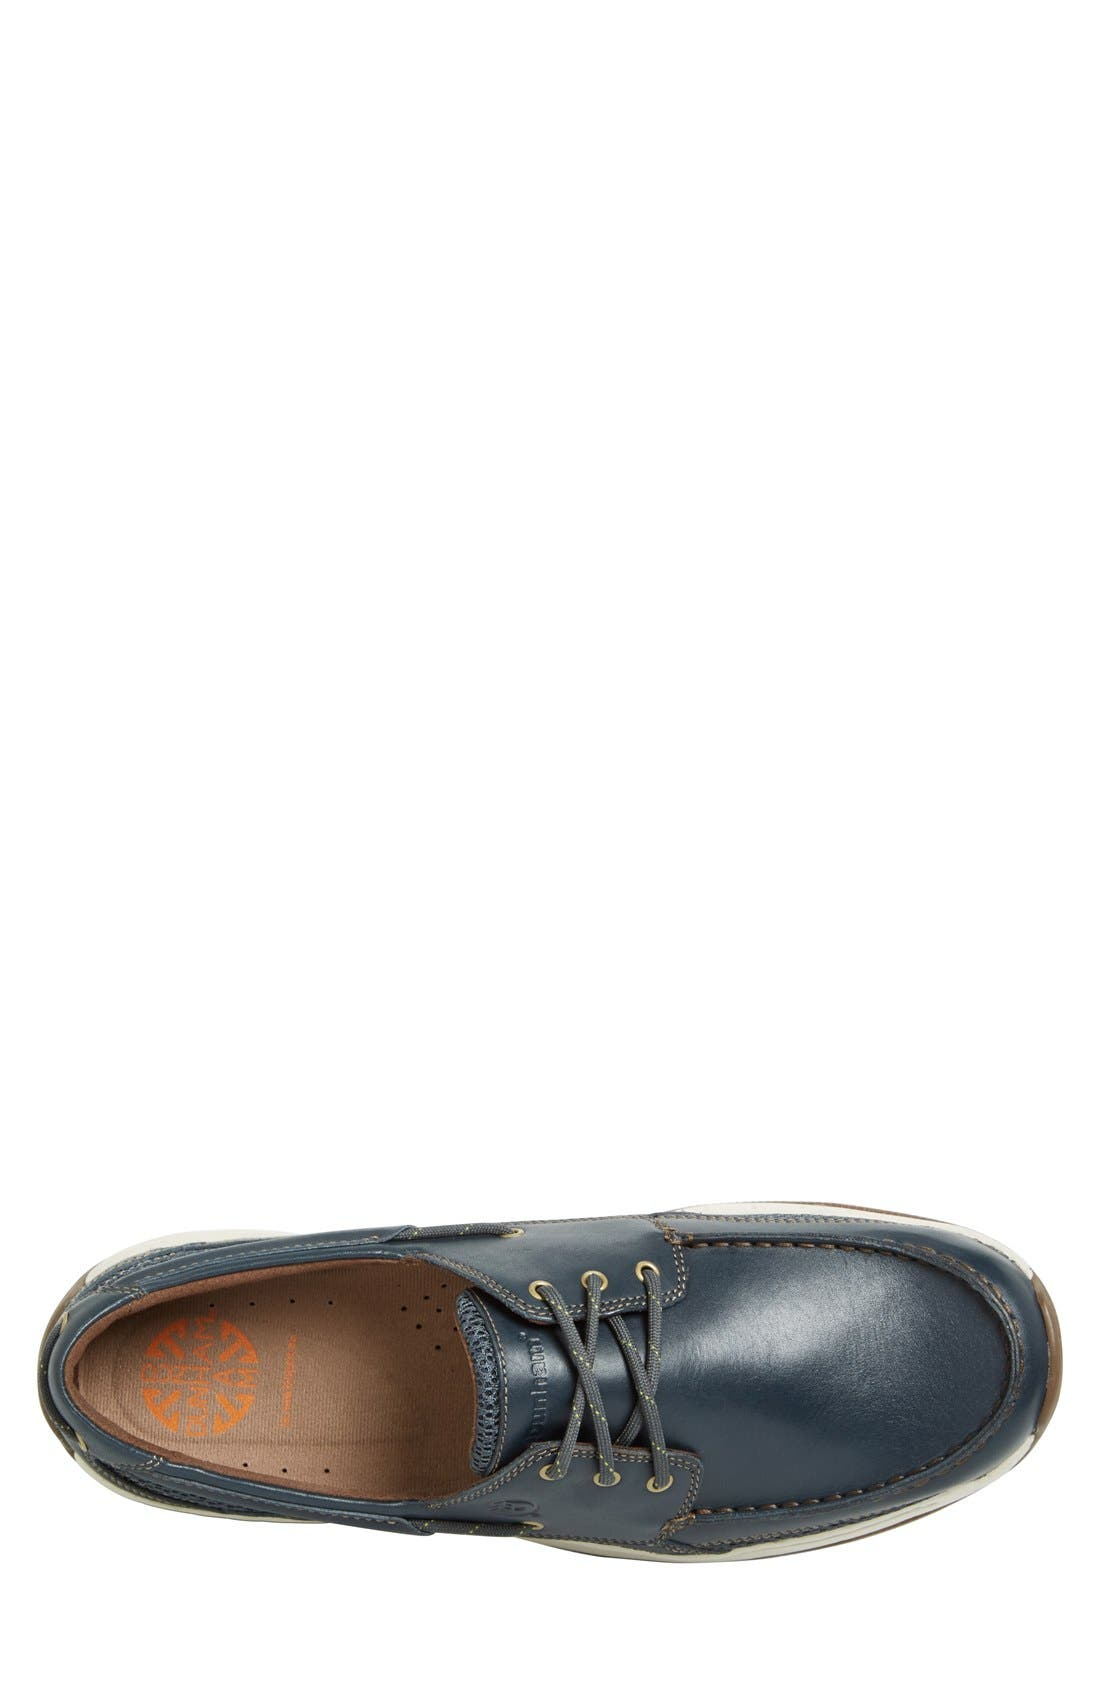 'Captain' Boat Shoe,                             Alternate thumbnail 3, color,                             NAVY